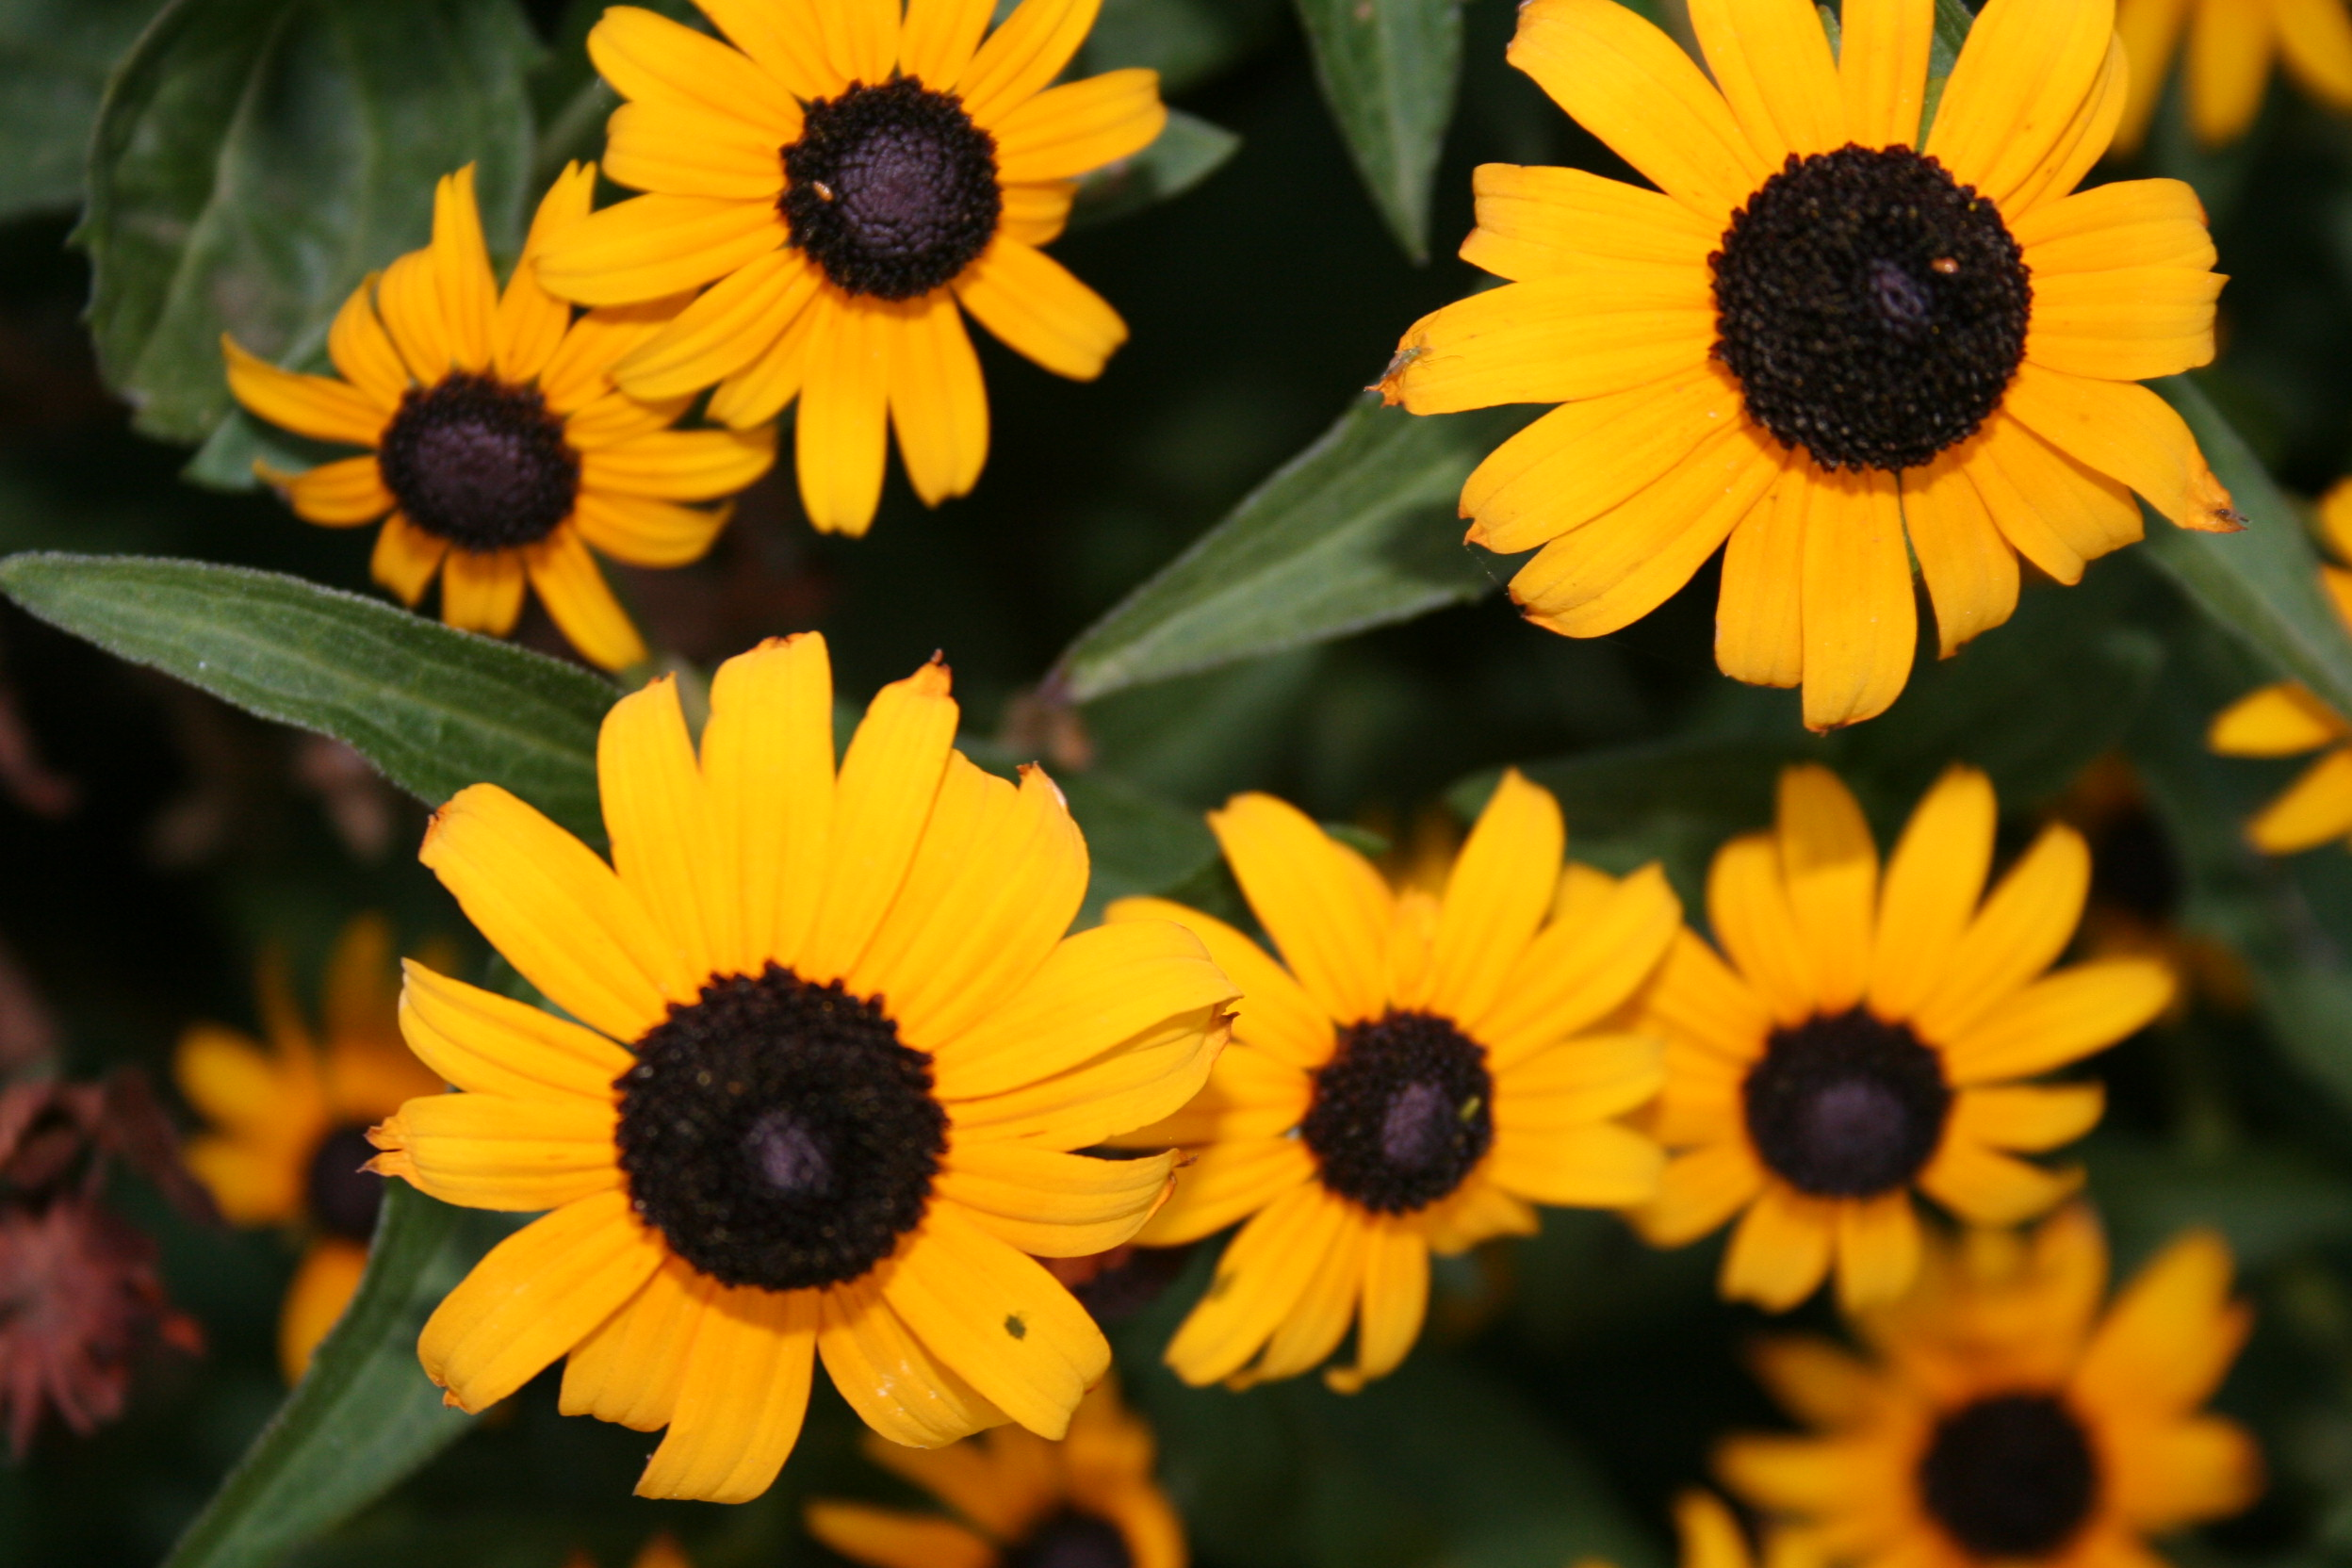 """Black-Eyed Susan (Rudbeckia grandiflora).  Daisy like golden-yellow flower petals surround a dark brown or black center reaching 2-4' and spreading 2'. The large flower blooms (2-4"""") will be arriving in the next two weeks and will continue into July. And, if you keep spent blooms trimmed off, you will get a few blooms in the fall. Plant in sun to partial shade. As a native prairie plant, you will find it to be low maintenance. It tolerates most soils but prefers well drained."""